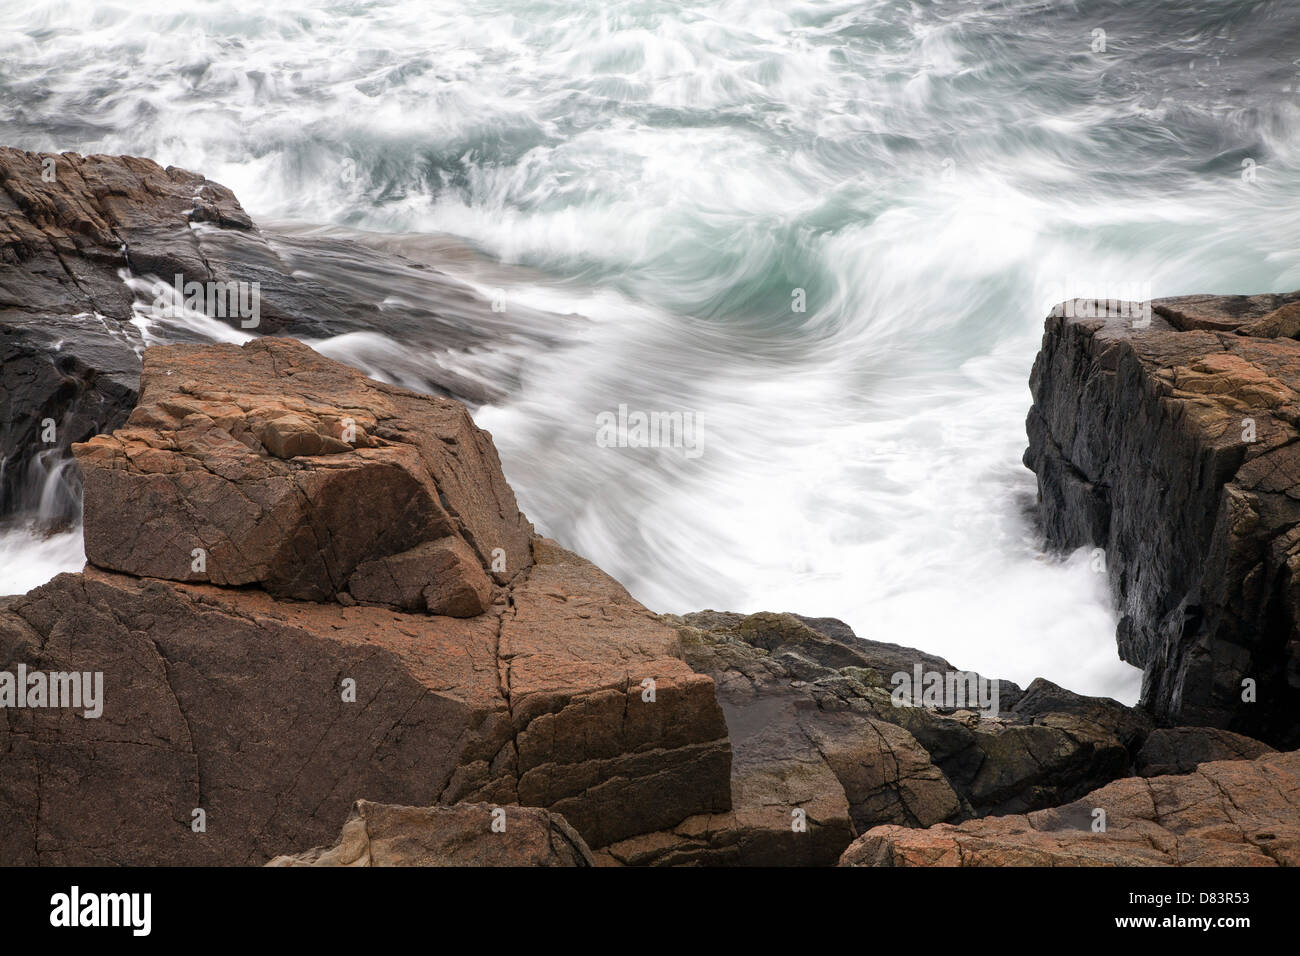 Waves crash along the rocky Maine coastline in Acadia National Park. - Stock Image